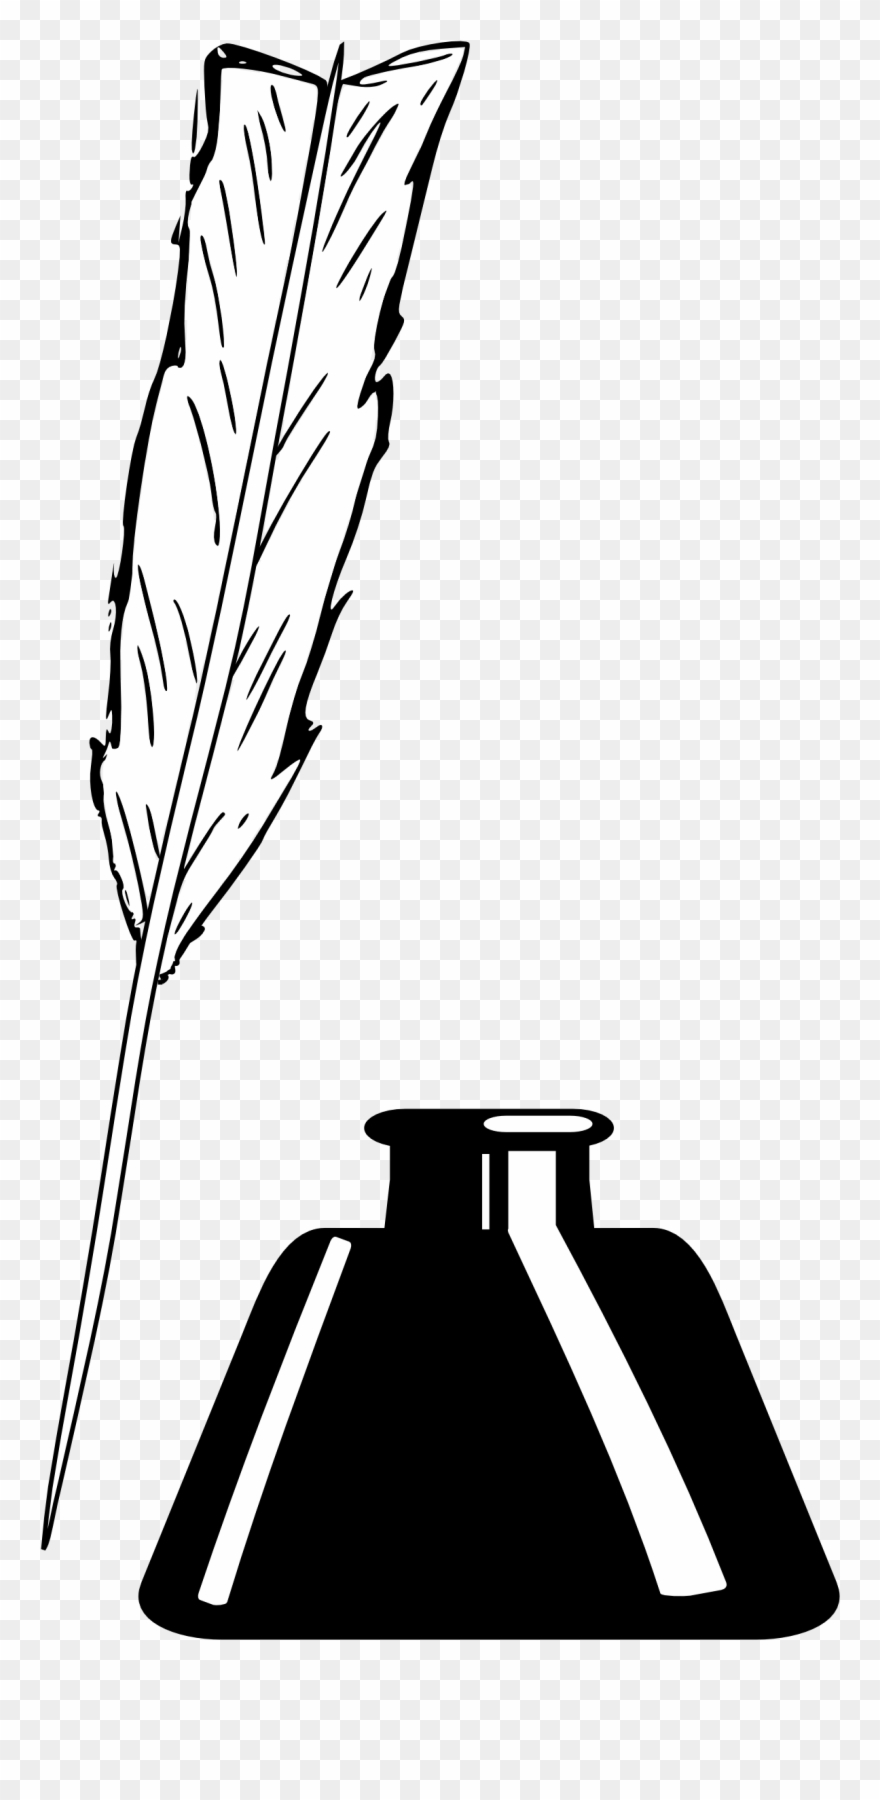 Inkwell clipart graphic transparent stock Pen And Inkwell Quill Clip Art - Inkwell Clipart - Png ... graphic transparent stock